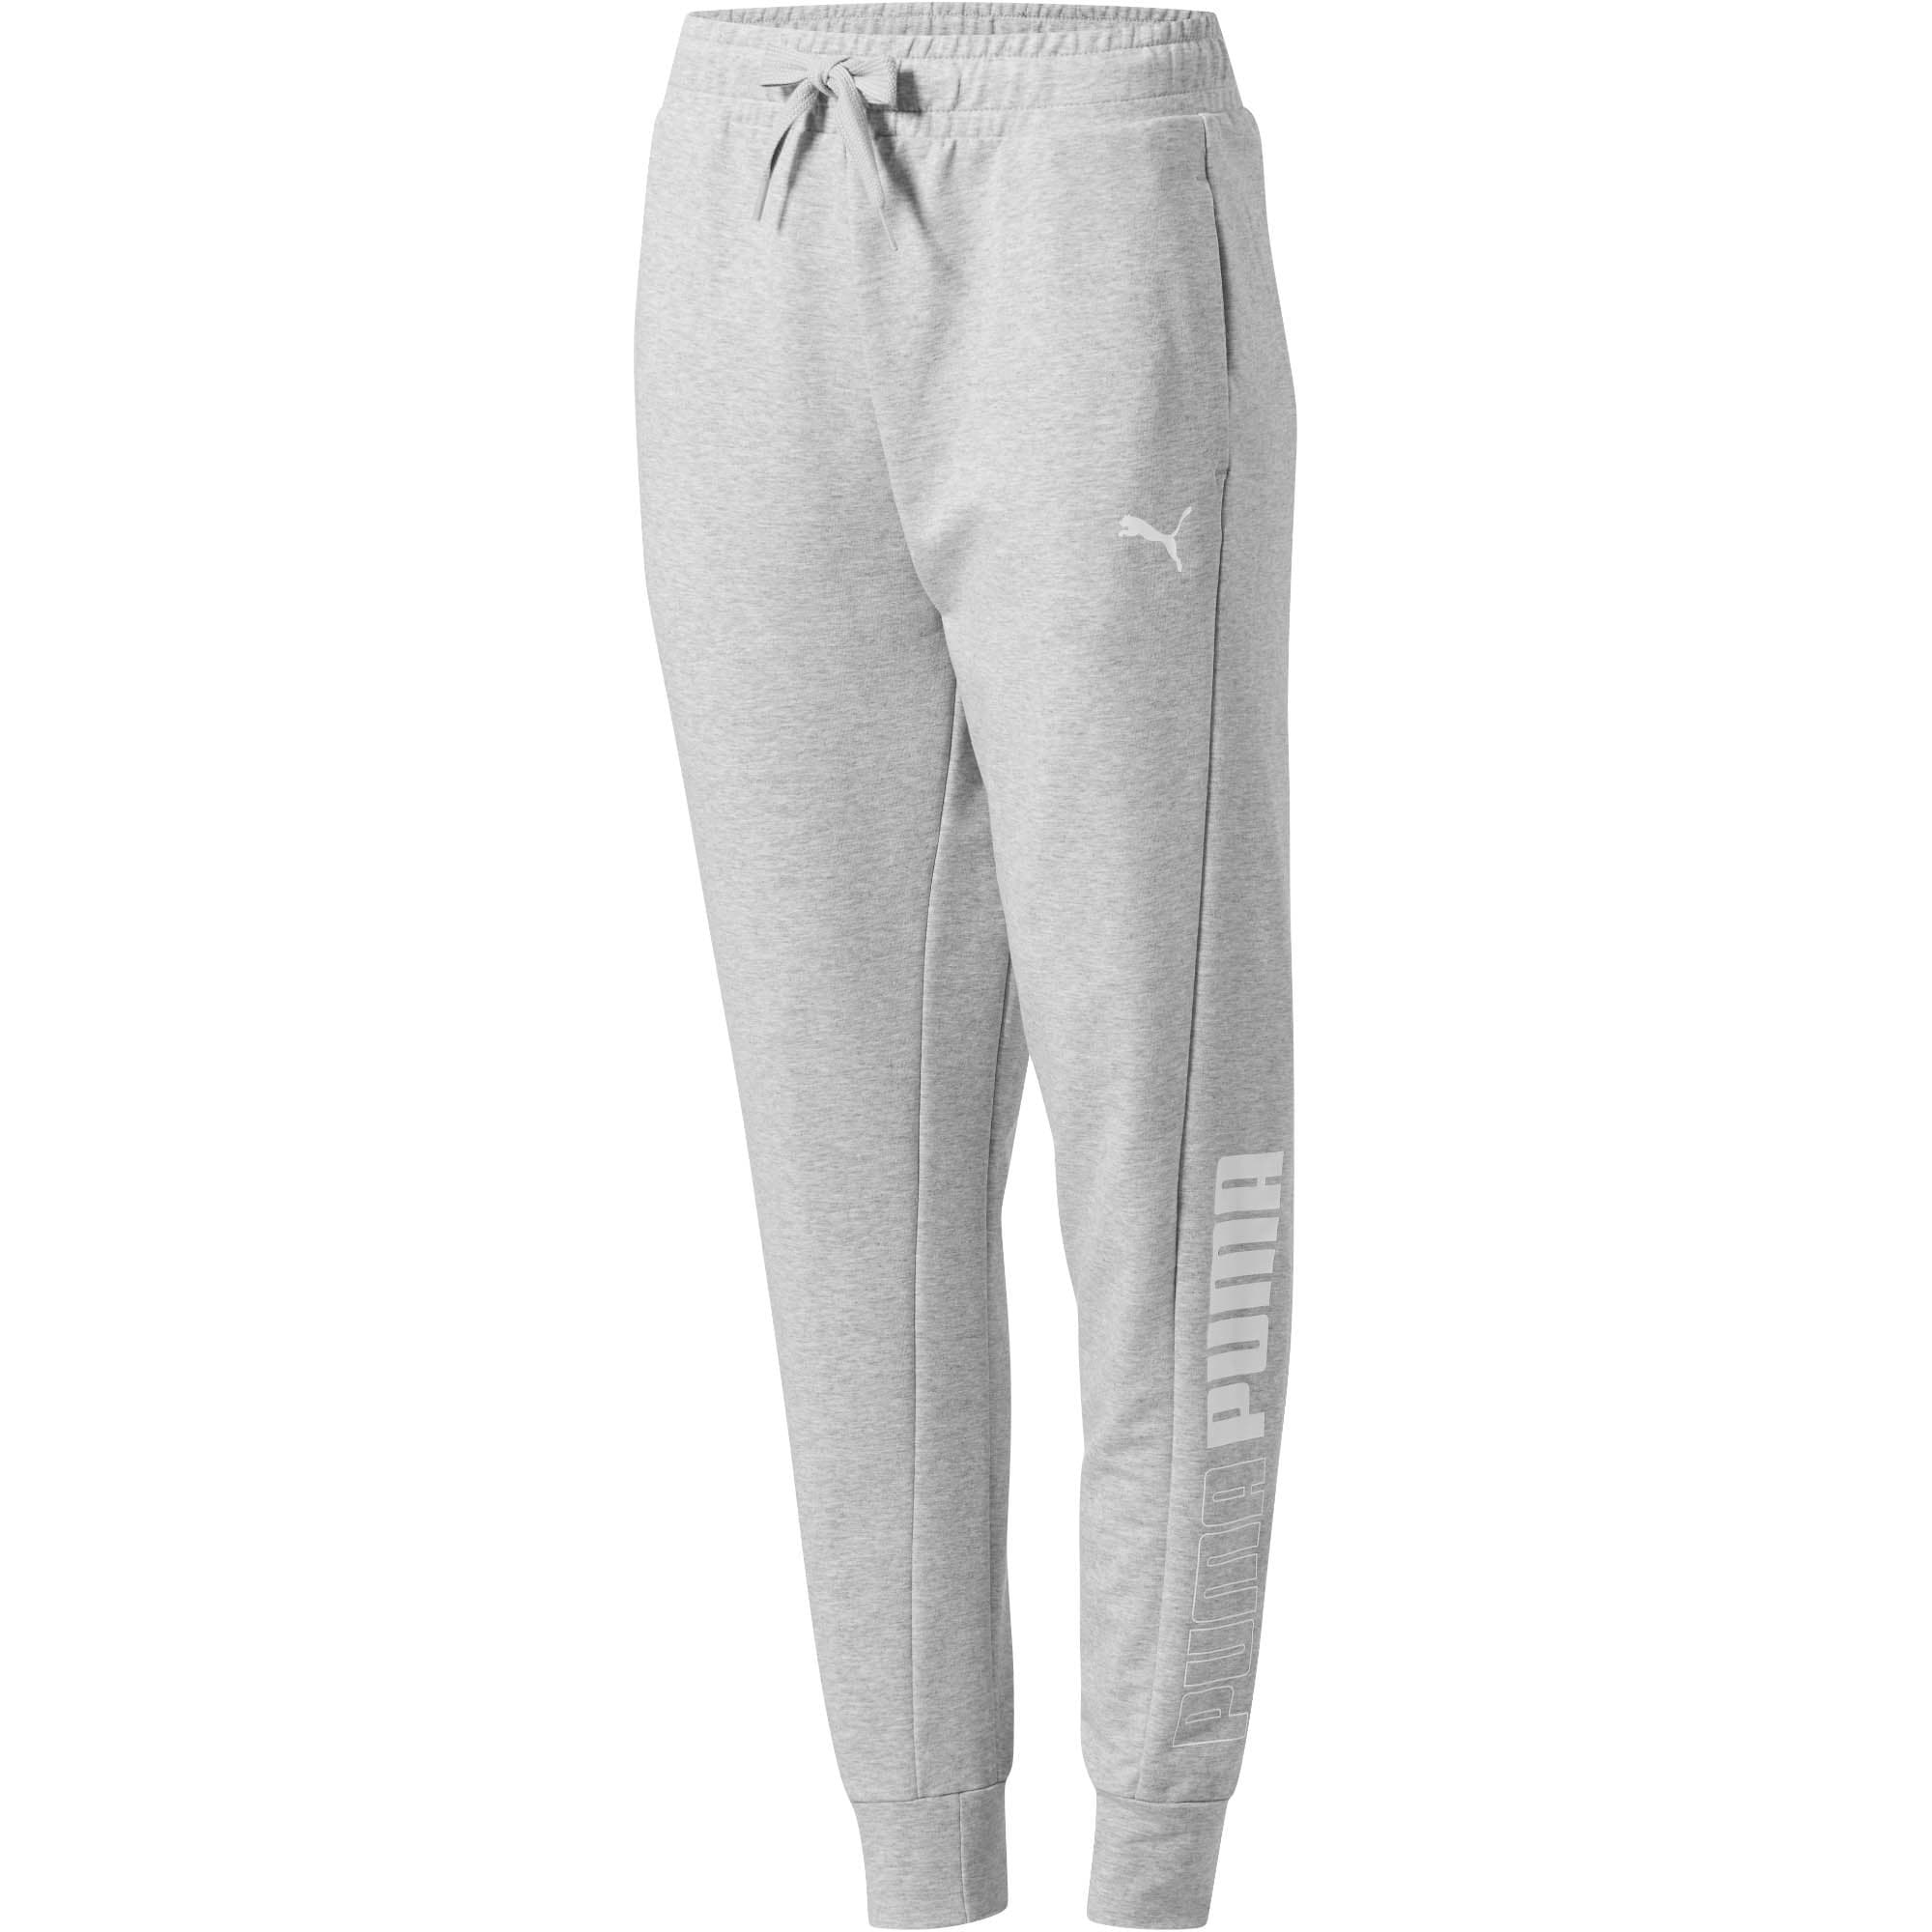 Thumbnail 1 of Modern Sports Women's Track Pants, Light Gray Heather, medium